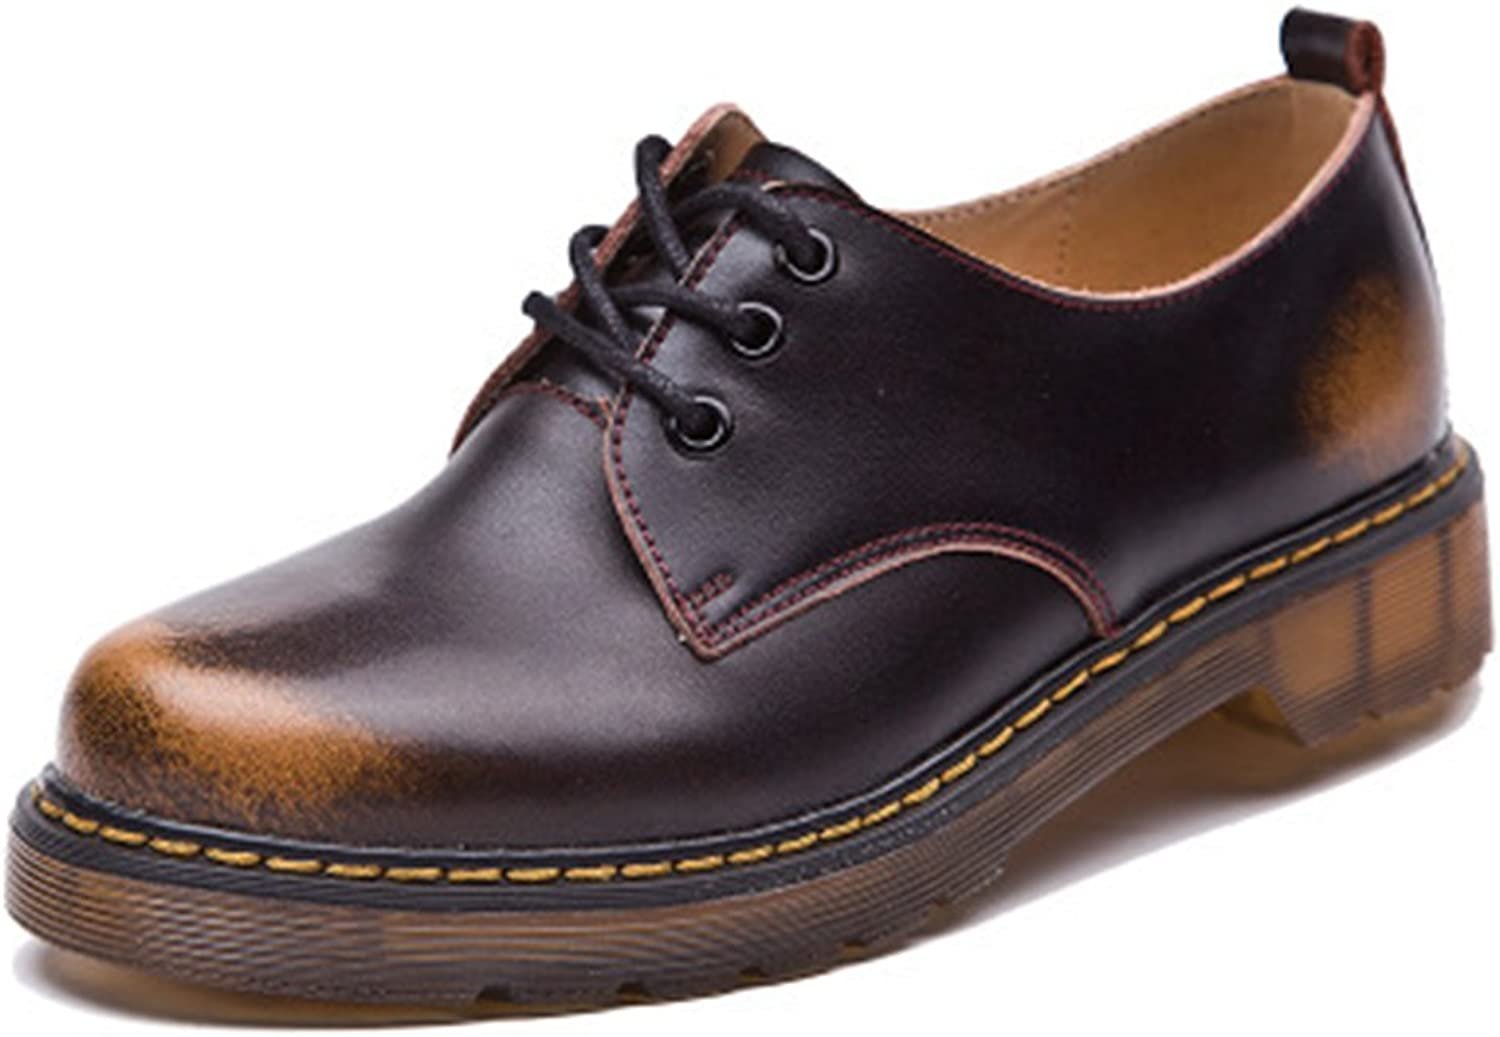 Bininbox Women's Mixed color lace-up Oxford shoes